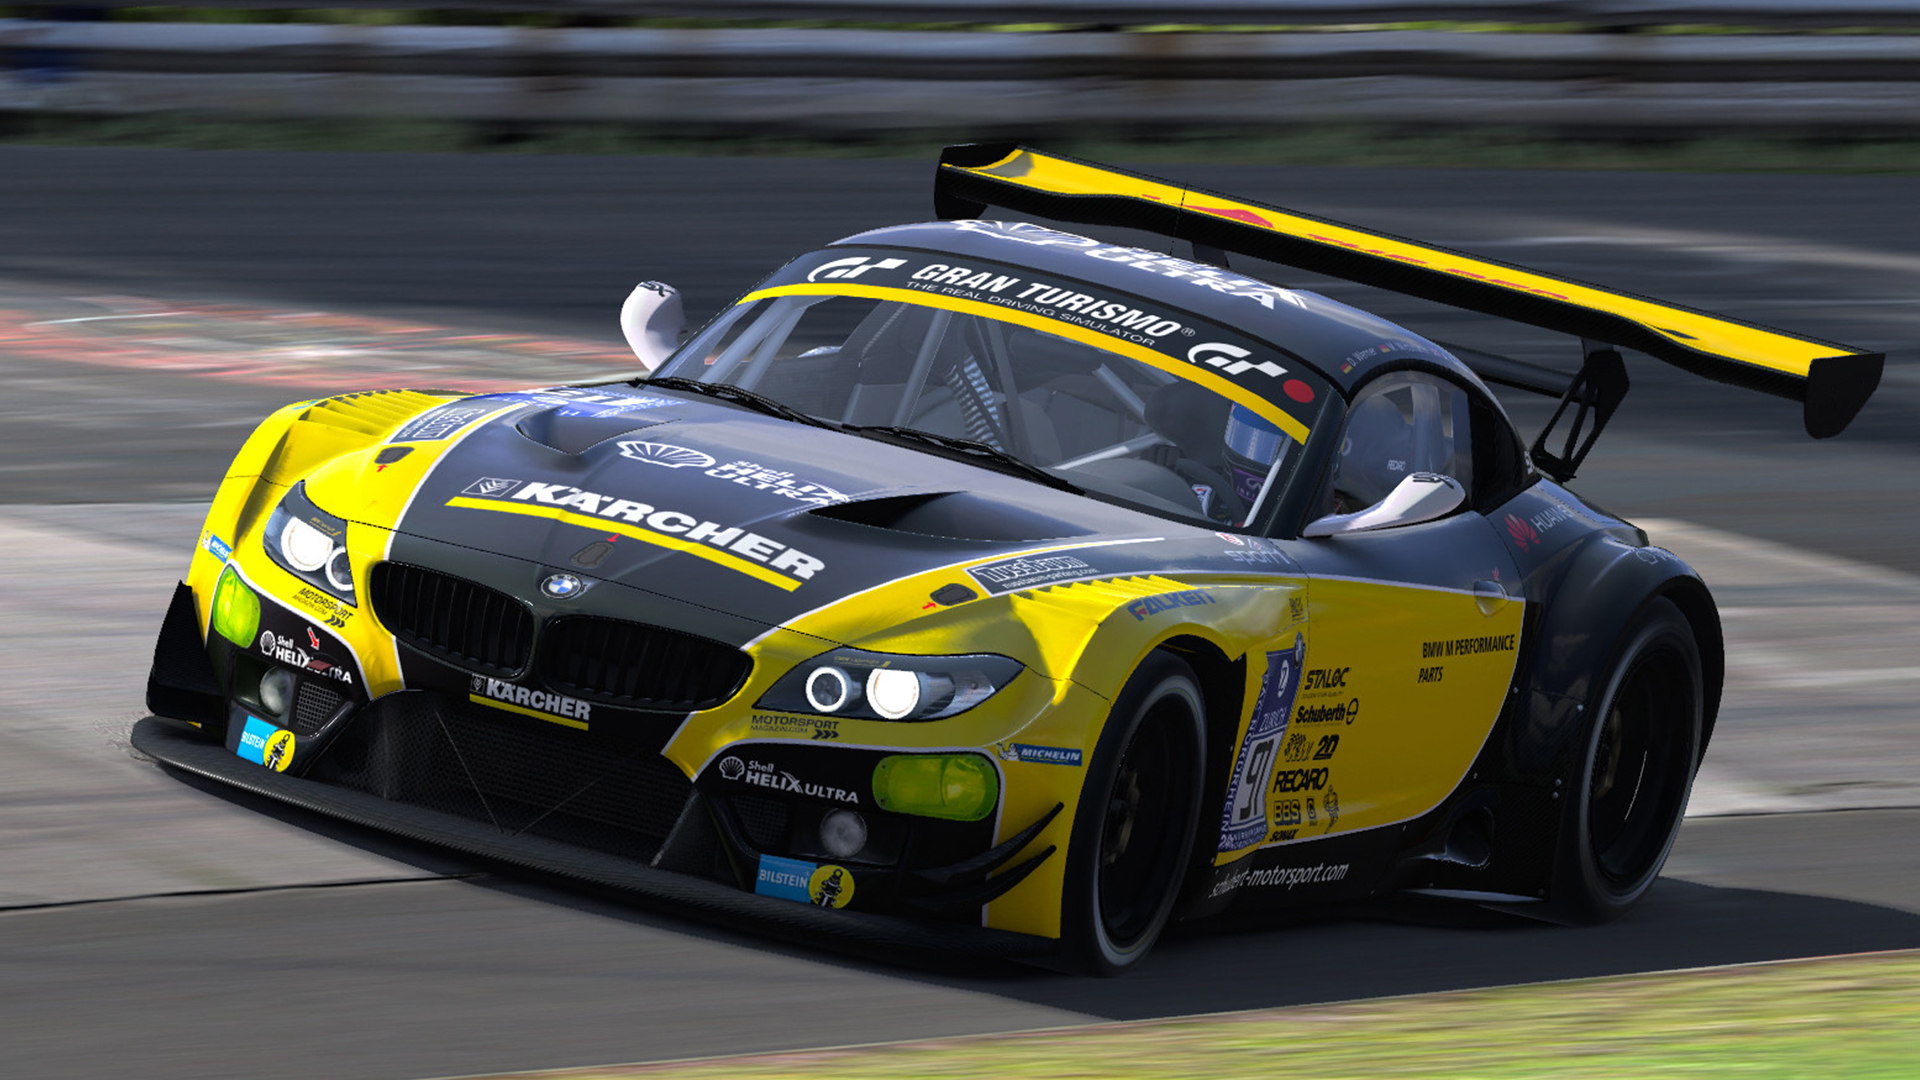 bmw z4 gt3 19 schubert motorsport 2015 24h n rburgring replication by simon e trading paints. Black Bedroom Furniture Sets. Home Design Ideas